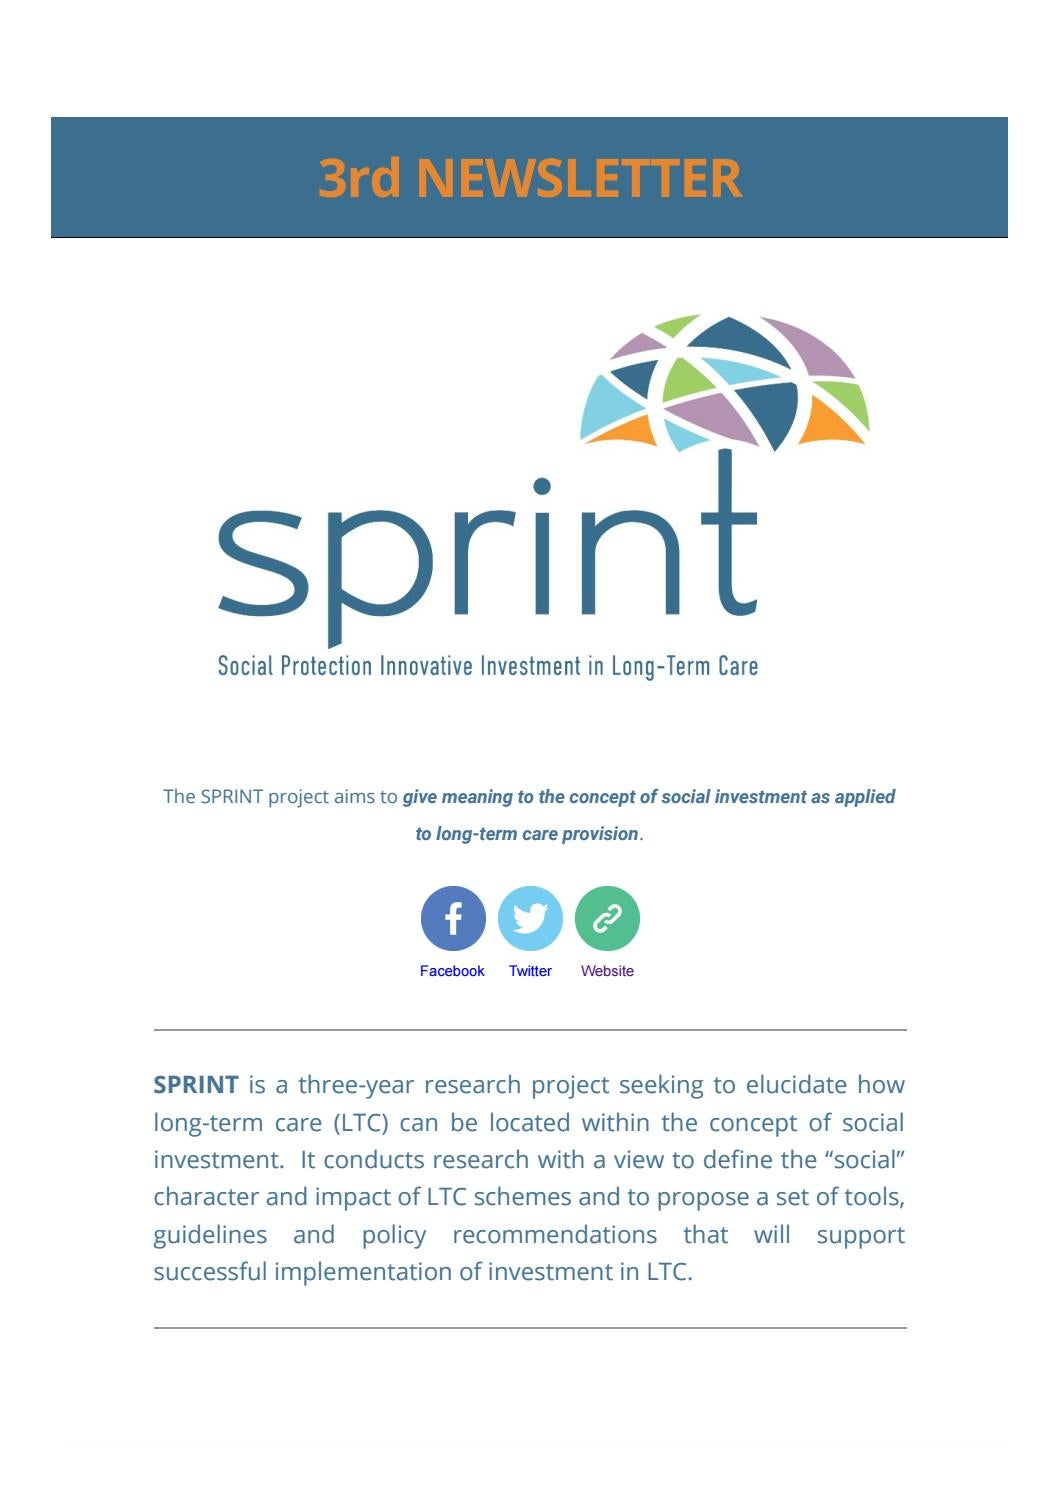 Sprint 3rd newsletter by Signosis - issuu